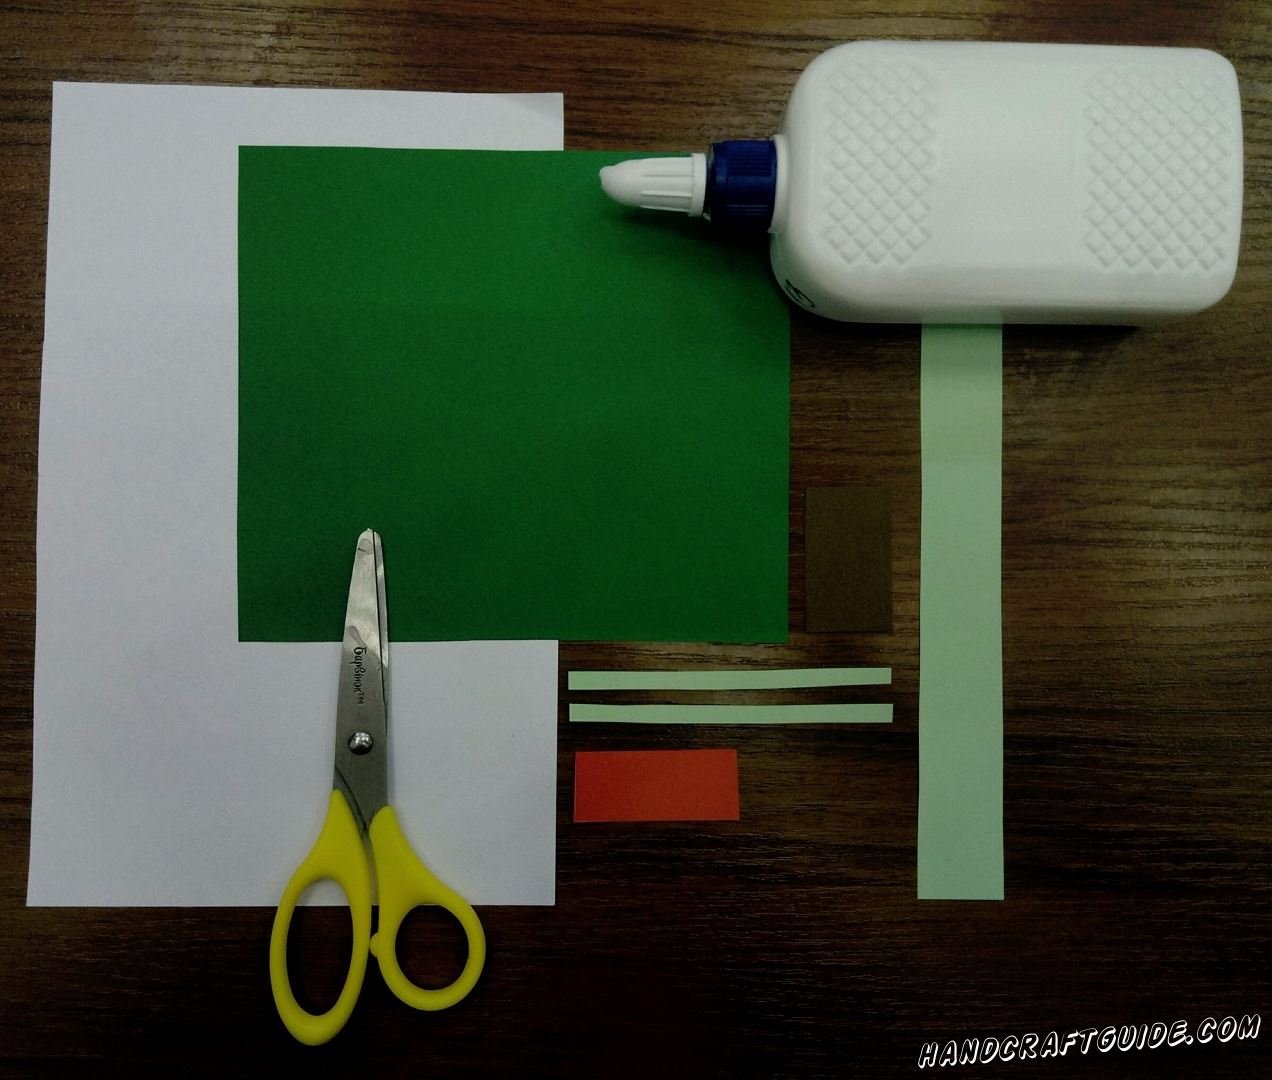 As usual we start with the preparation of all necessary details. Cut a square, which will be our background later, out of green paper. Take turquoise paper and cut out a wide (around 2.5 cm width) and 2 small thin stripes. Finish with cutting out one small red rectangle and brown one.